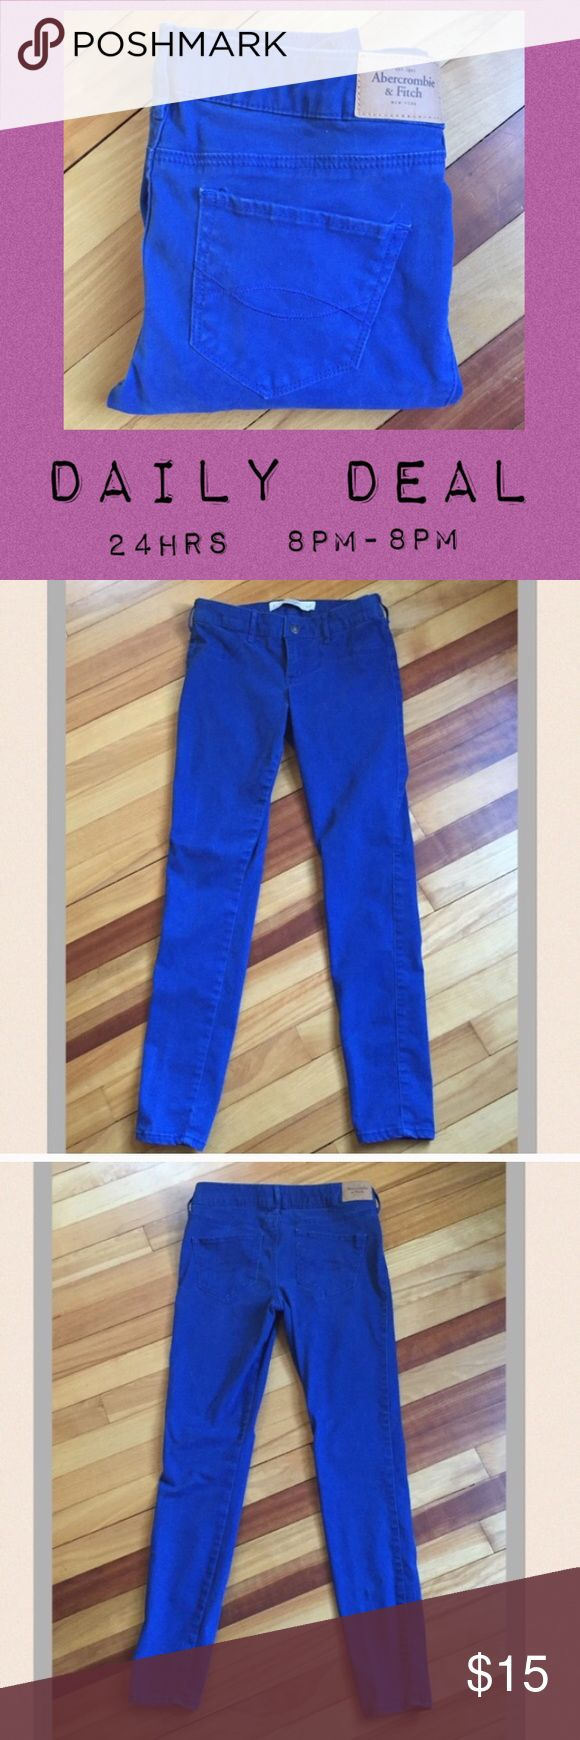 "Abercrombie and Fitch Blue Skinny Pants Super soft and comfortable blue skinnies by Abercrombie and Fitch. 80% cotton, 17% viscose, 3% elastane. Waist measures 14""; Rise 8""; Inseam 28"". EUC Abercrombie & Fitch Pants Skinny"